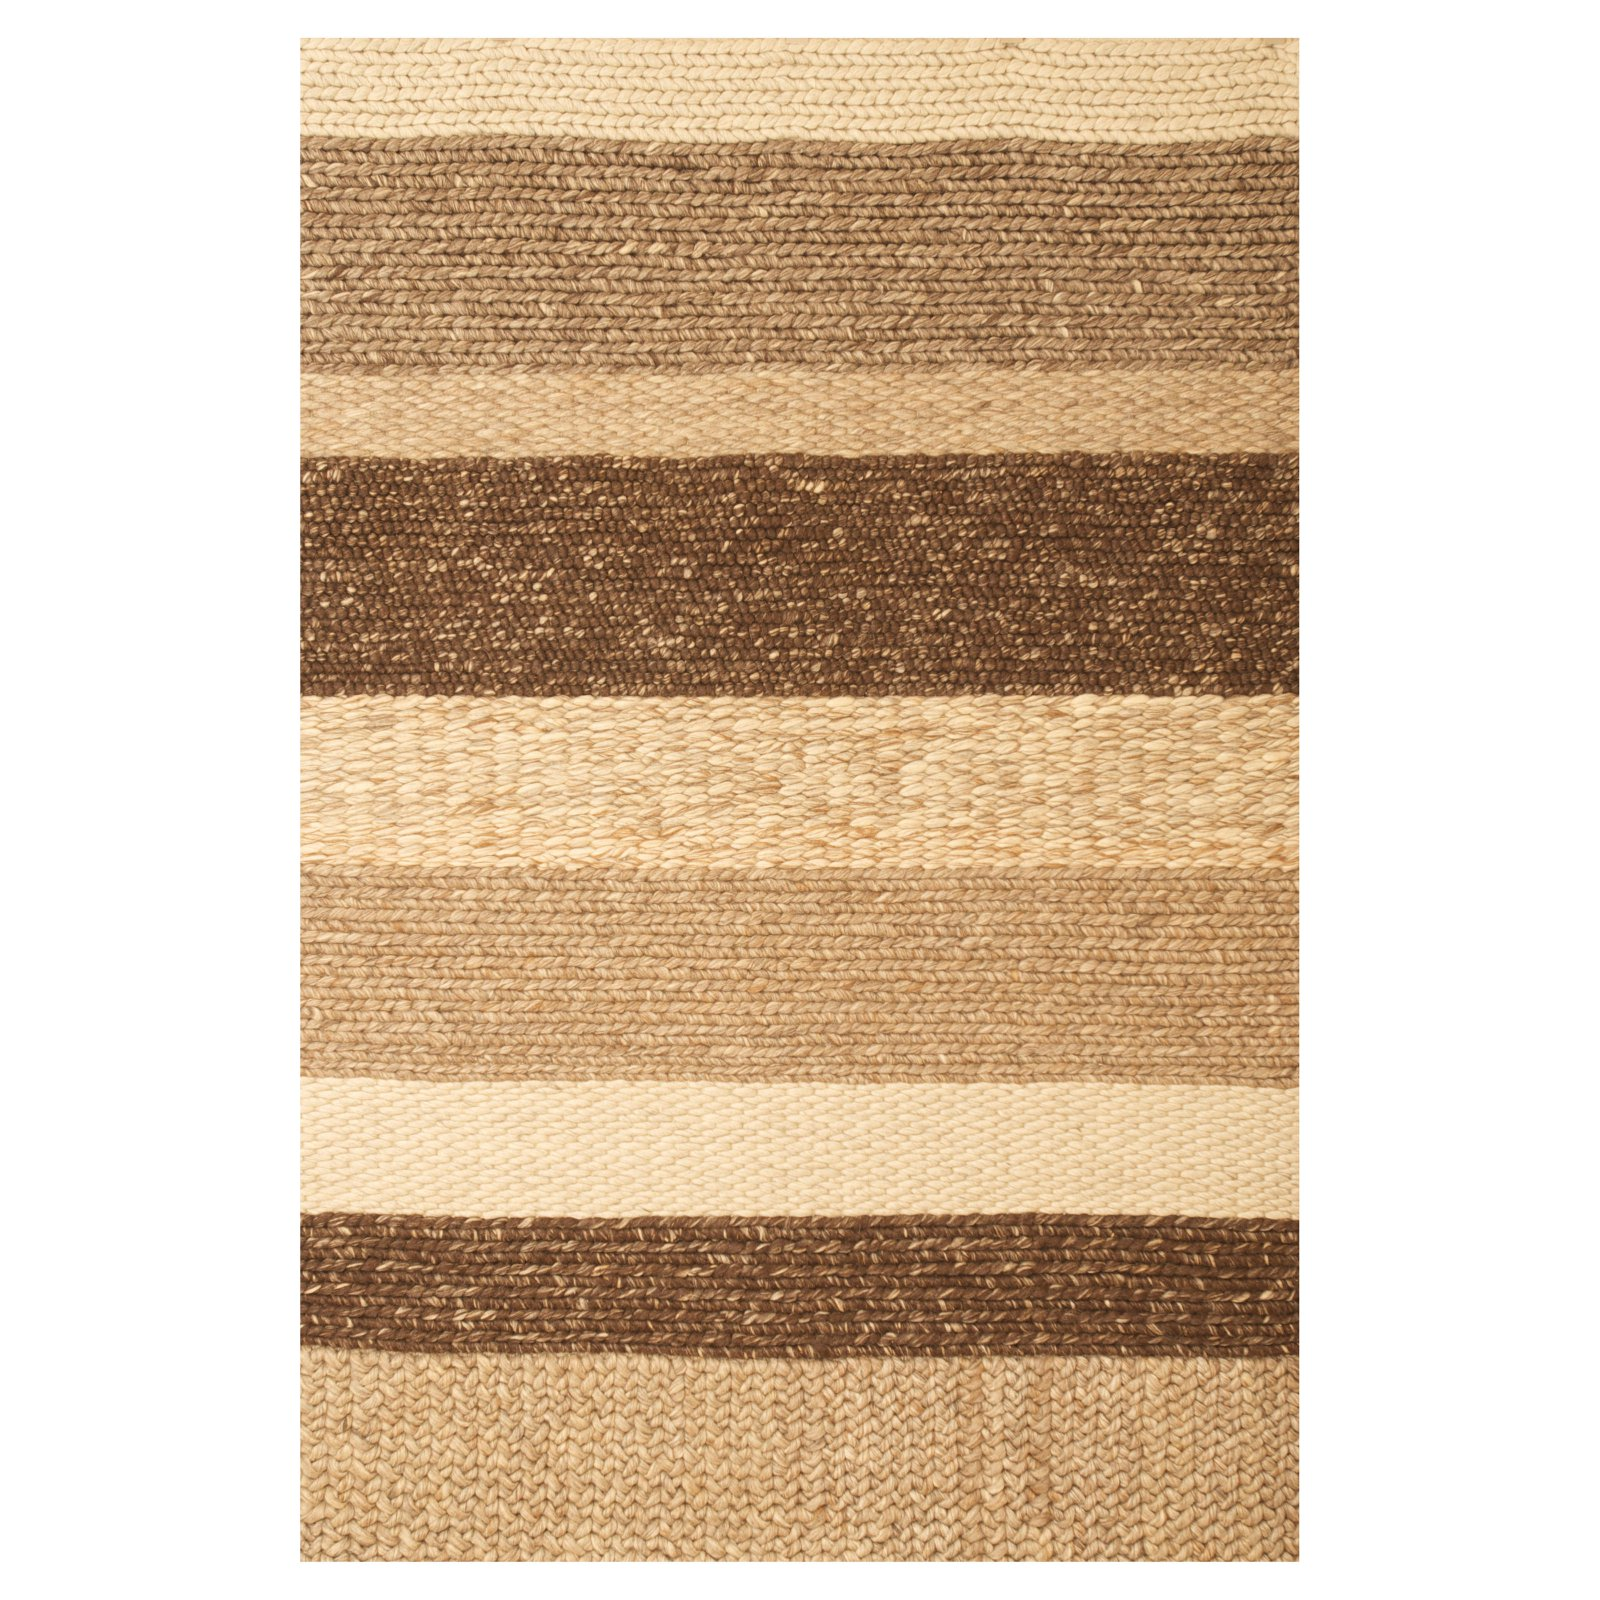 Image of Abacasa Atlas Stripe Area Rug